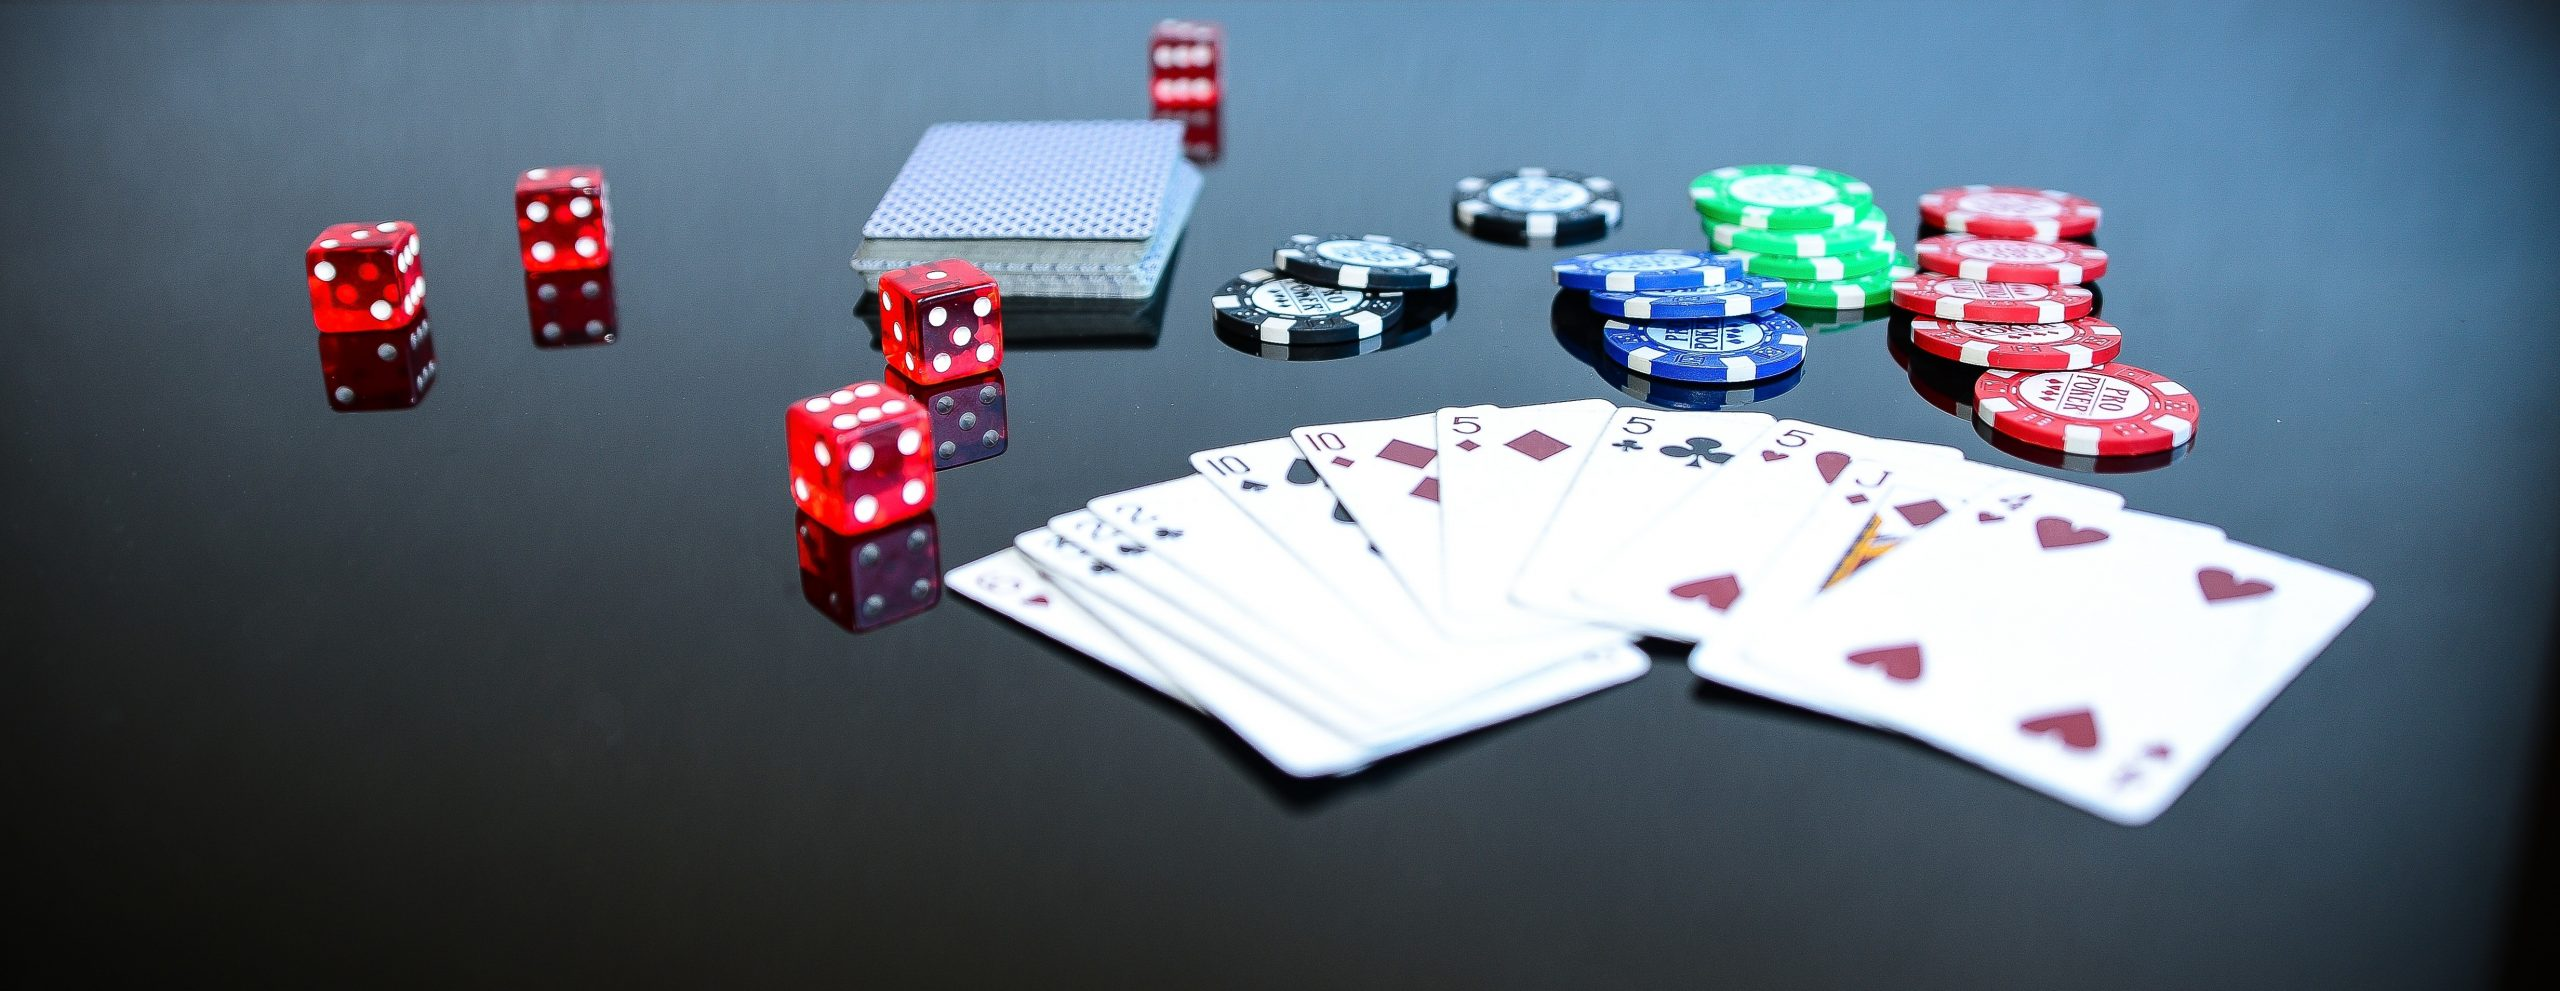 Live casino- A Singapore togel trusted gambling site